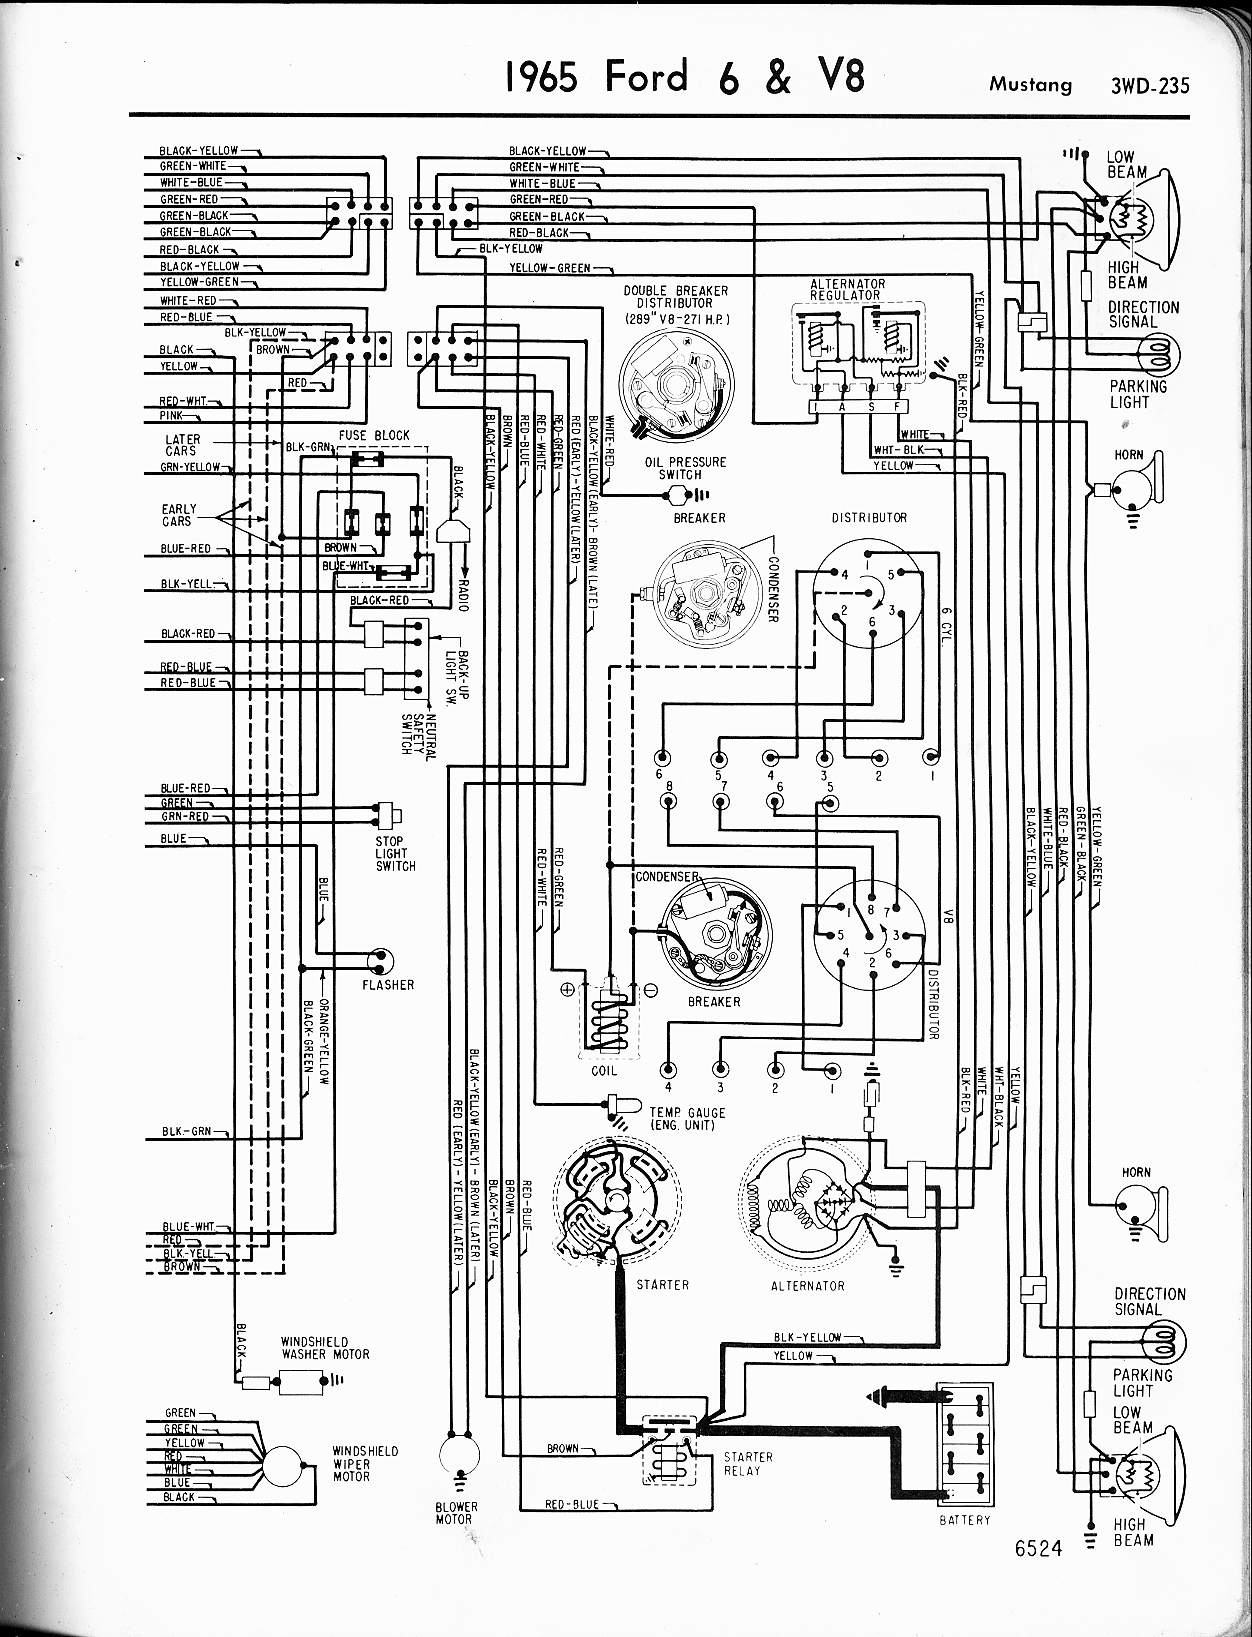 Ford Mustang Wiring Archive Of Automotive Diagram 2005 Diagrams Rh Wizard Com